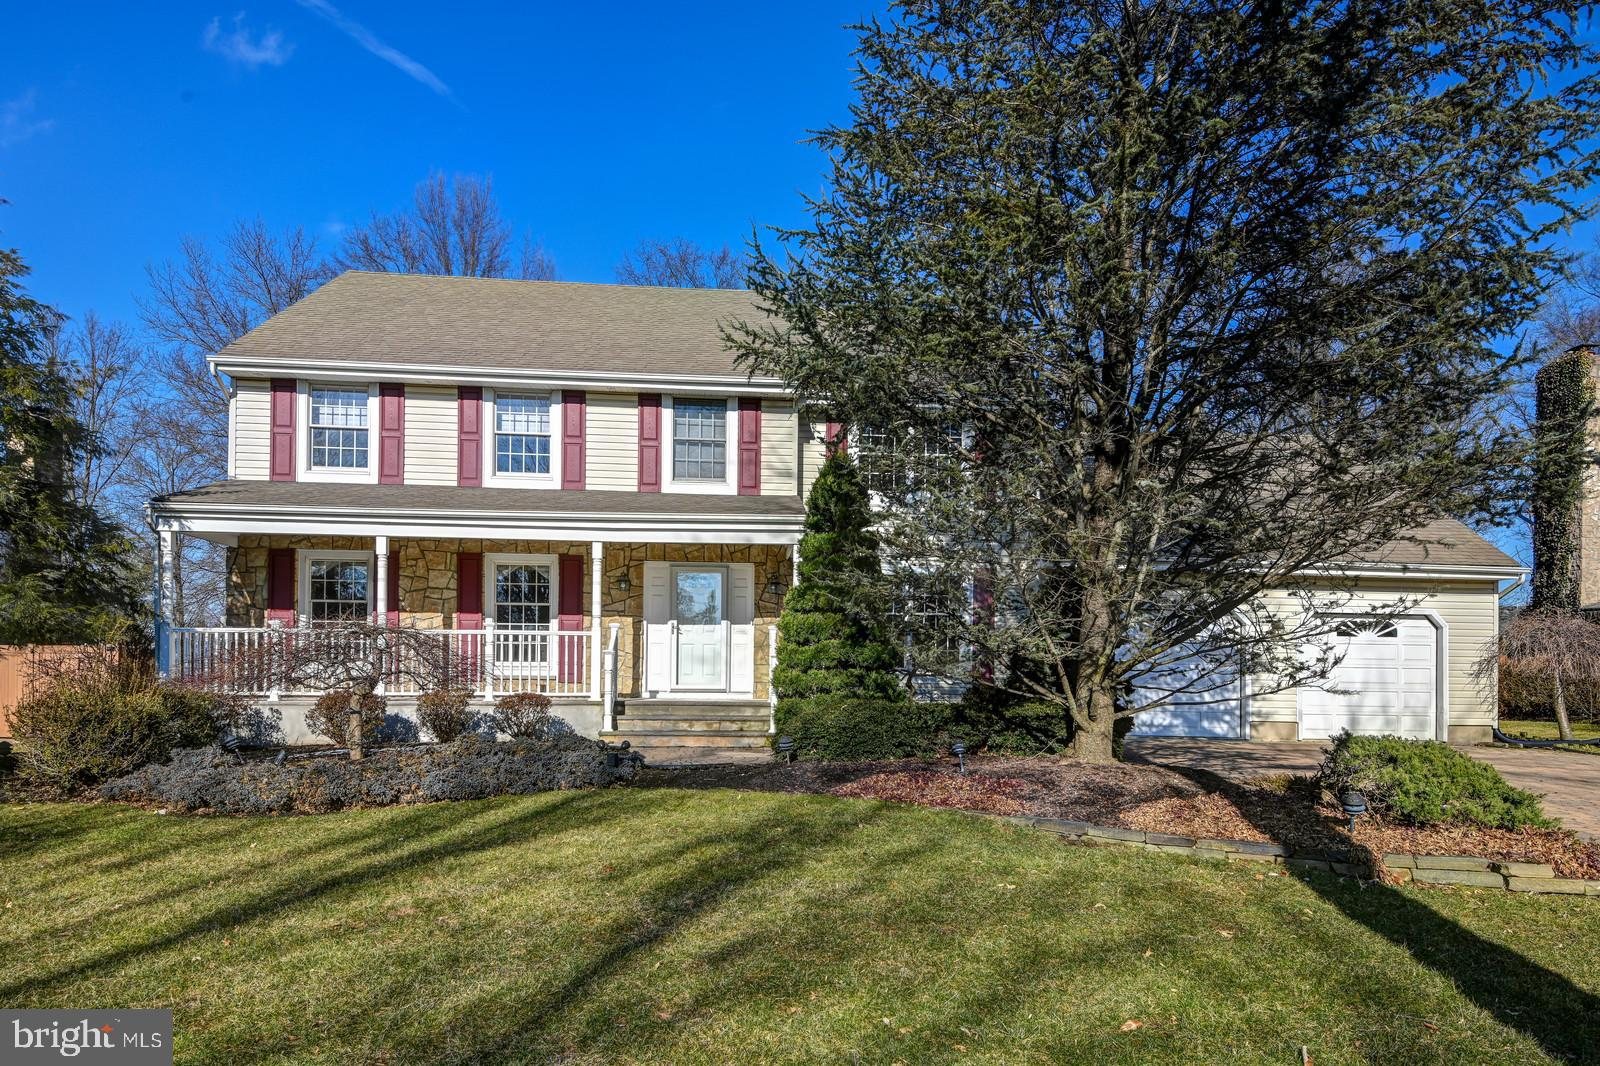 15 WEXFORD DRIVE, MONMOUTH JUNCTION, NJ 08852